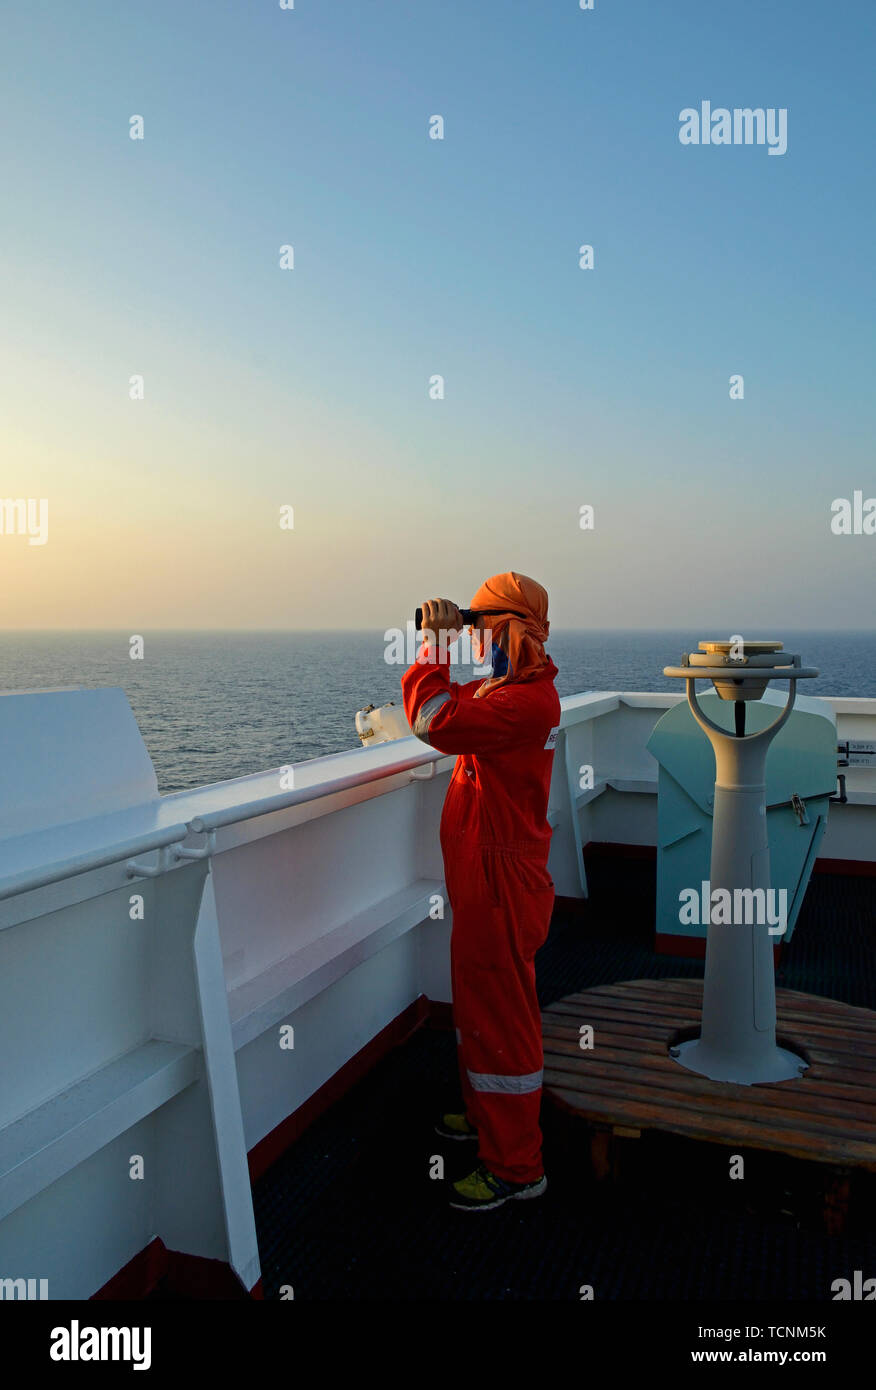 Gulf Of Aden Stock Photos & Gulf Of Aden Stock Images - Alamy